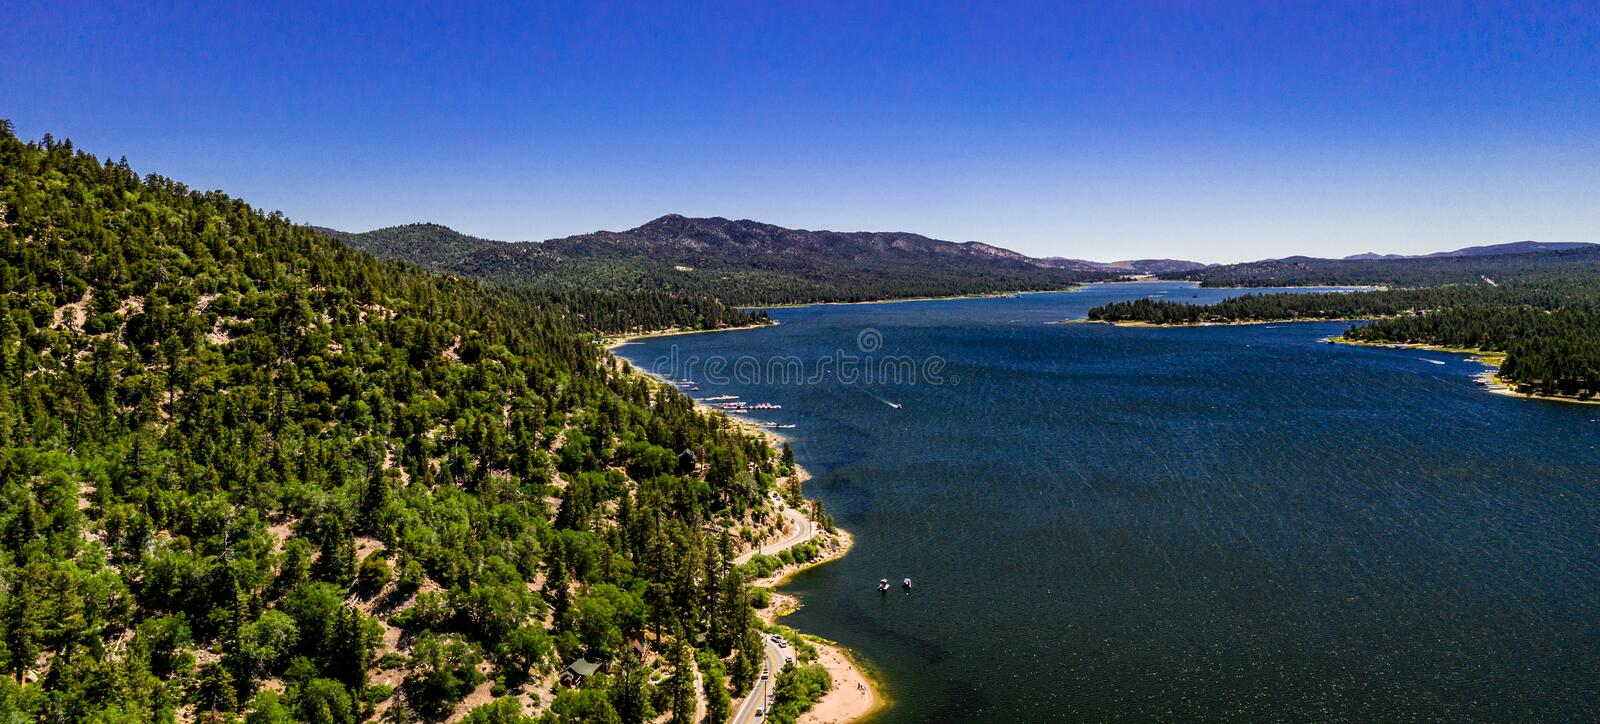 Aerial, Drone Landscape Over Big Bear Lake, California. Aerial, drone panorama of resort Big Bear Lake, California in the San Bernardino Mountains with clear stock photos